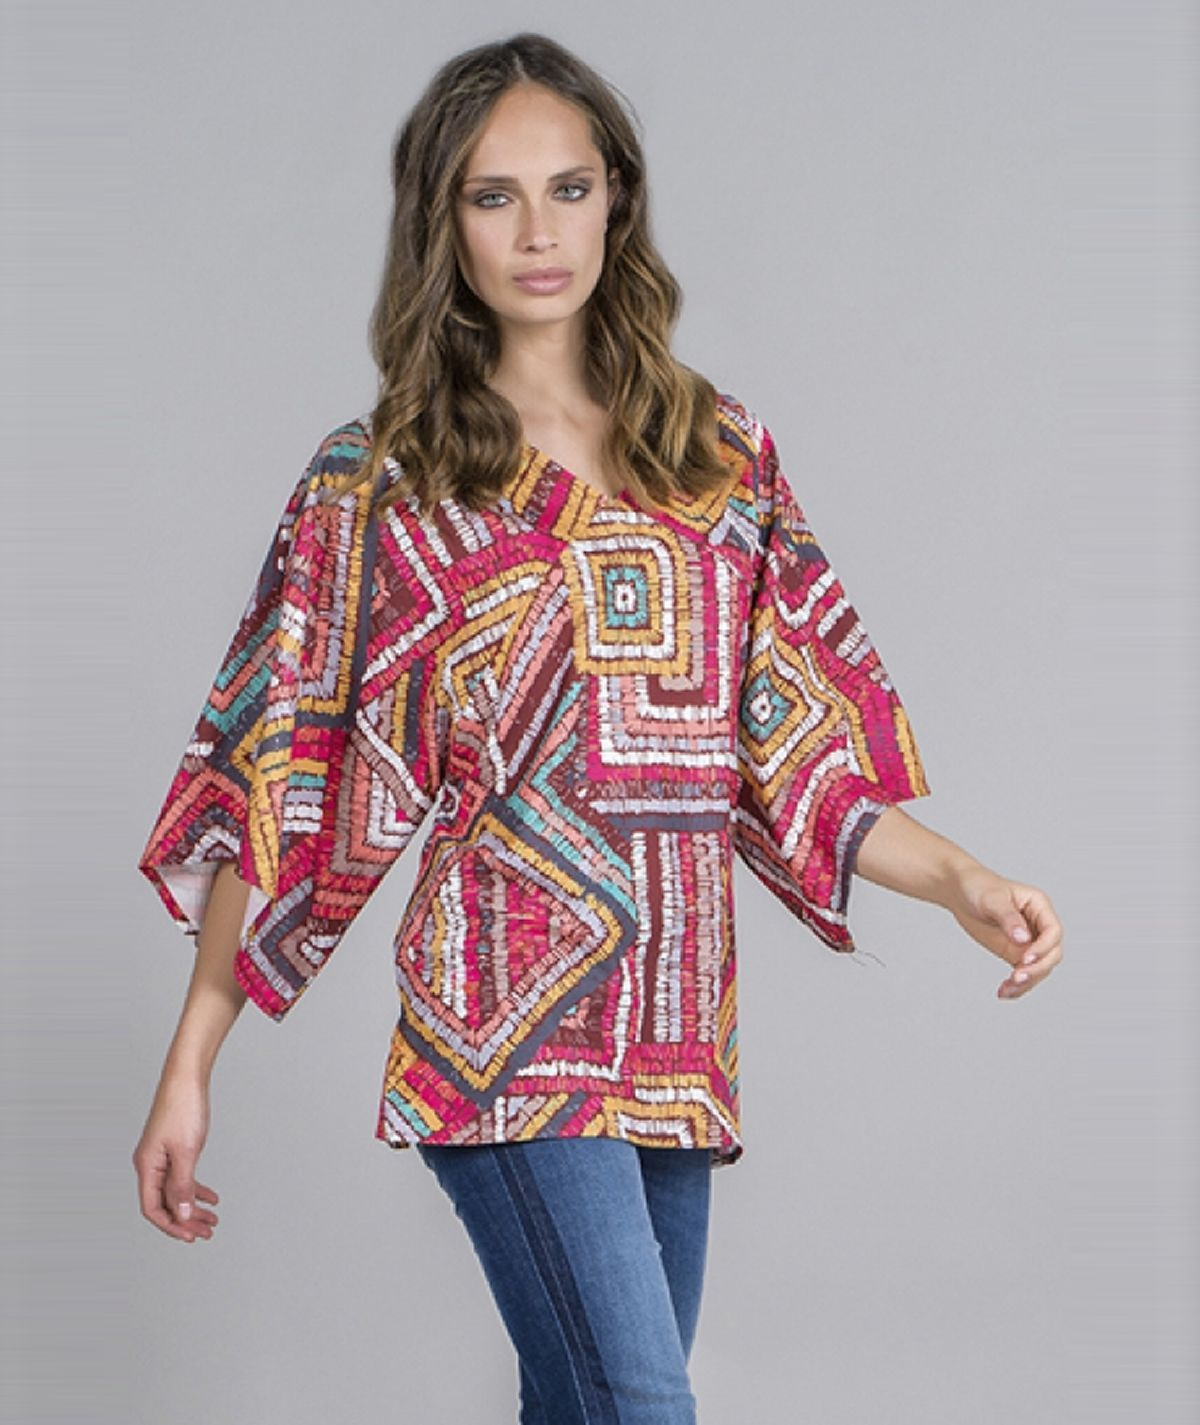 Blusa estampado tribal